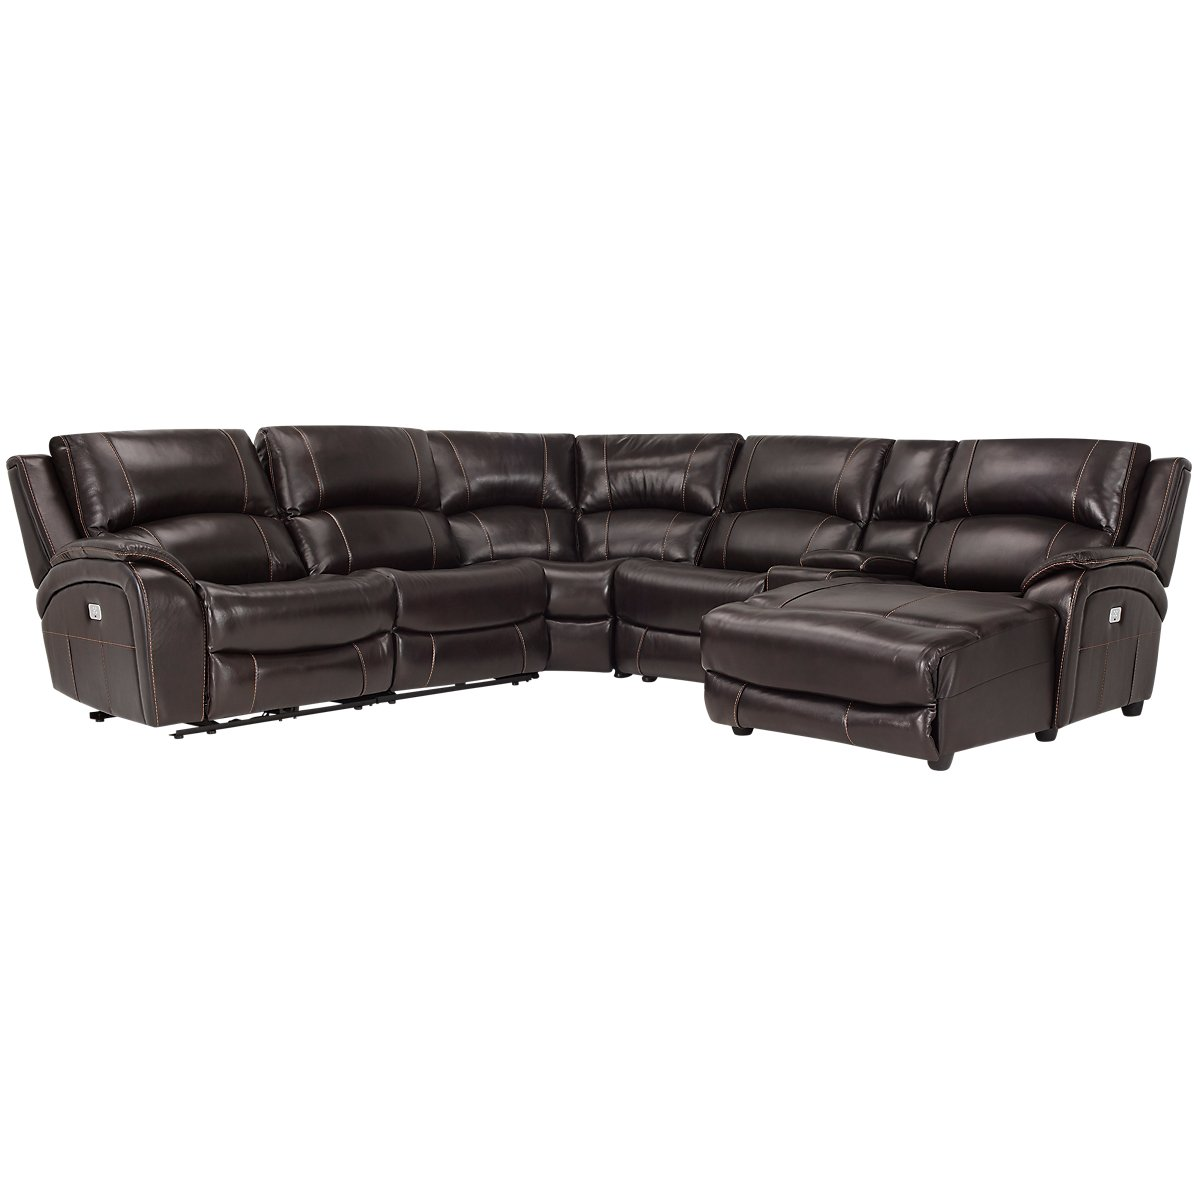 comfort black reclining boy home design with sofas for and chaise sectional your lazy decor latest